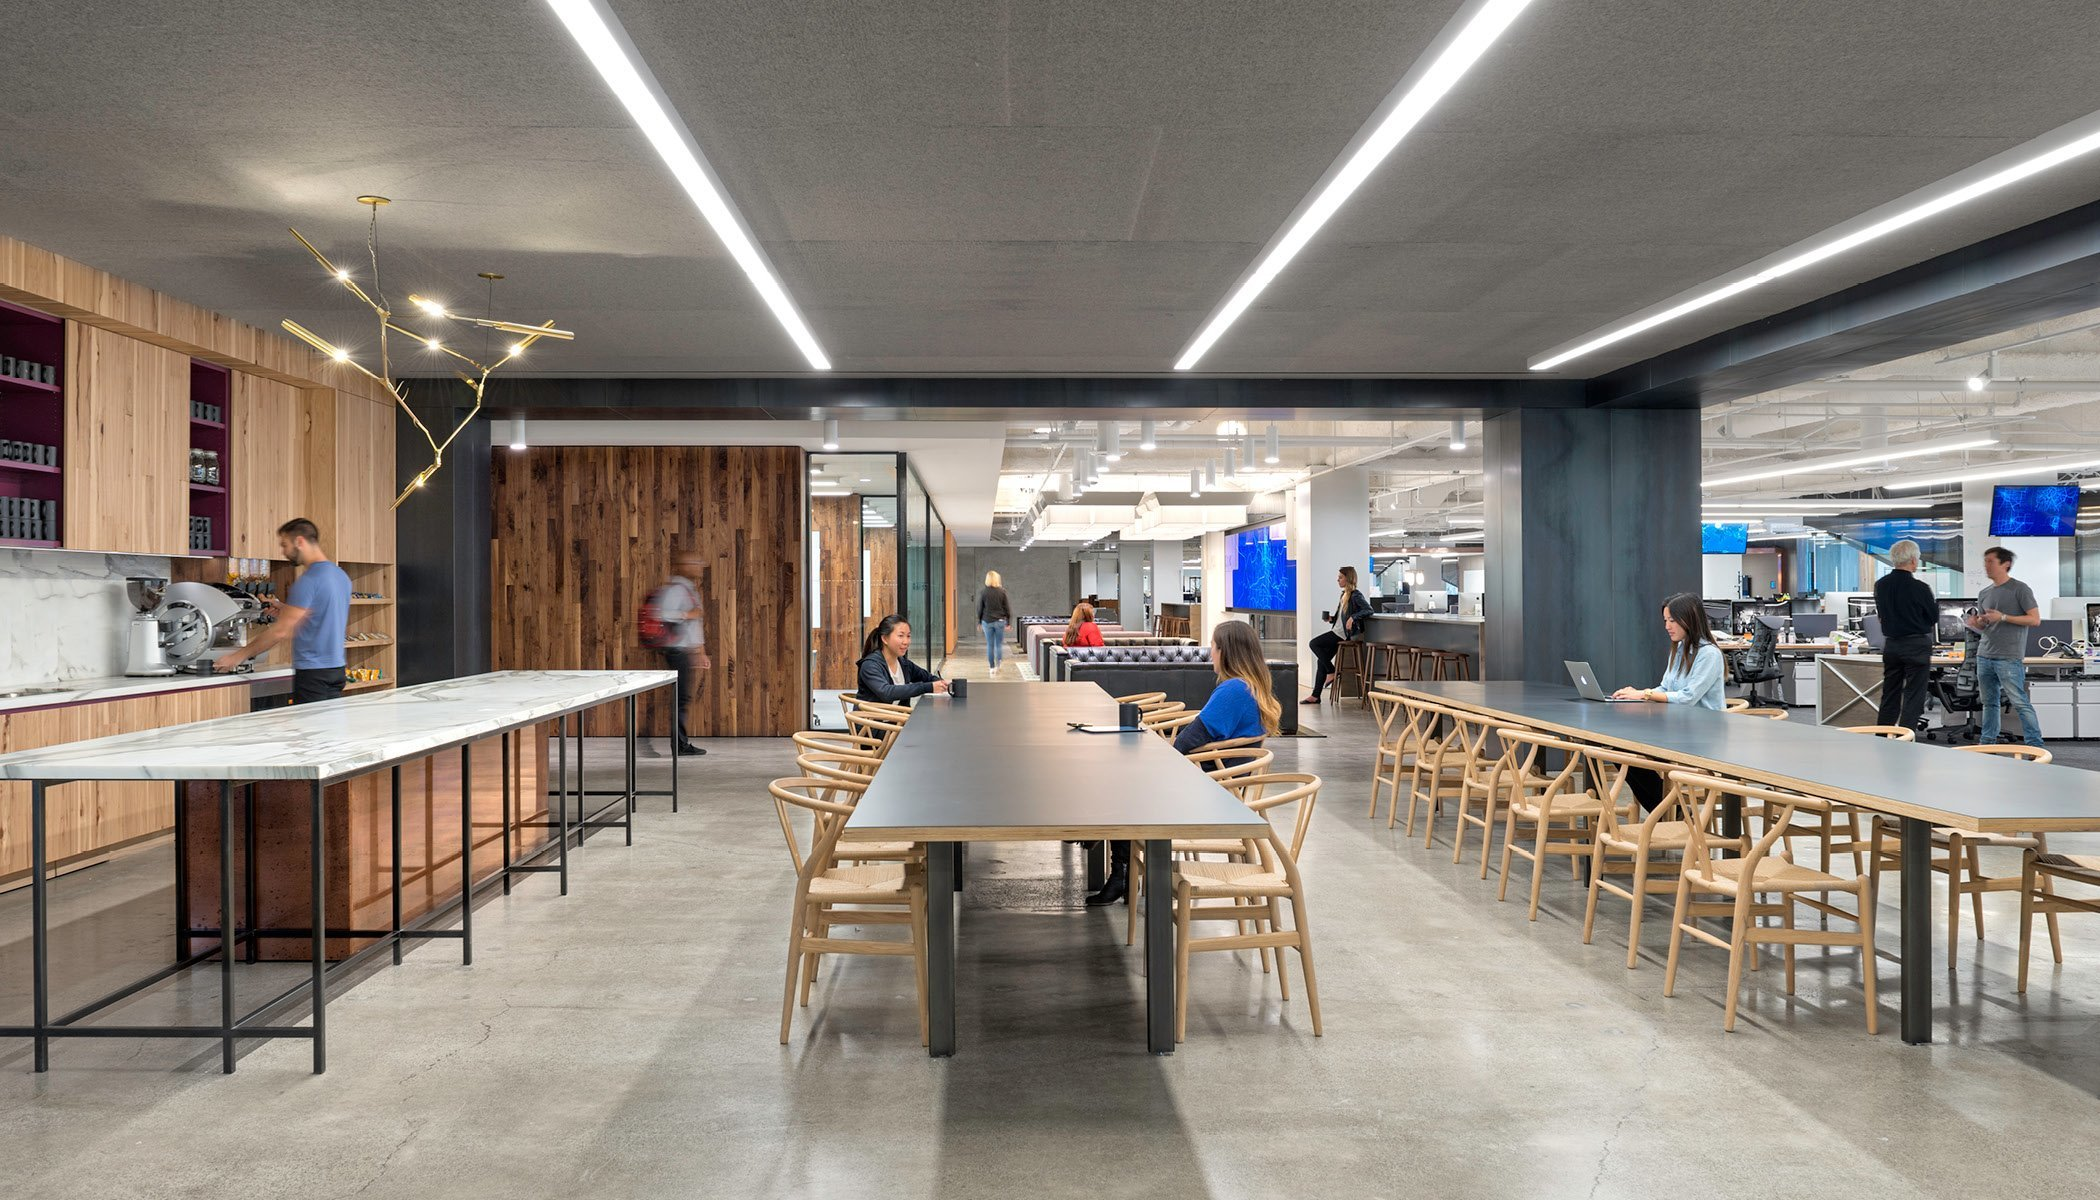 Inside Uber's New San Francisco Headquarters